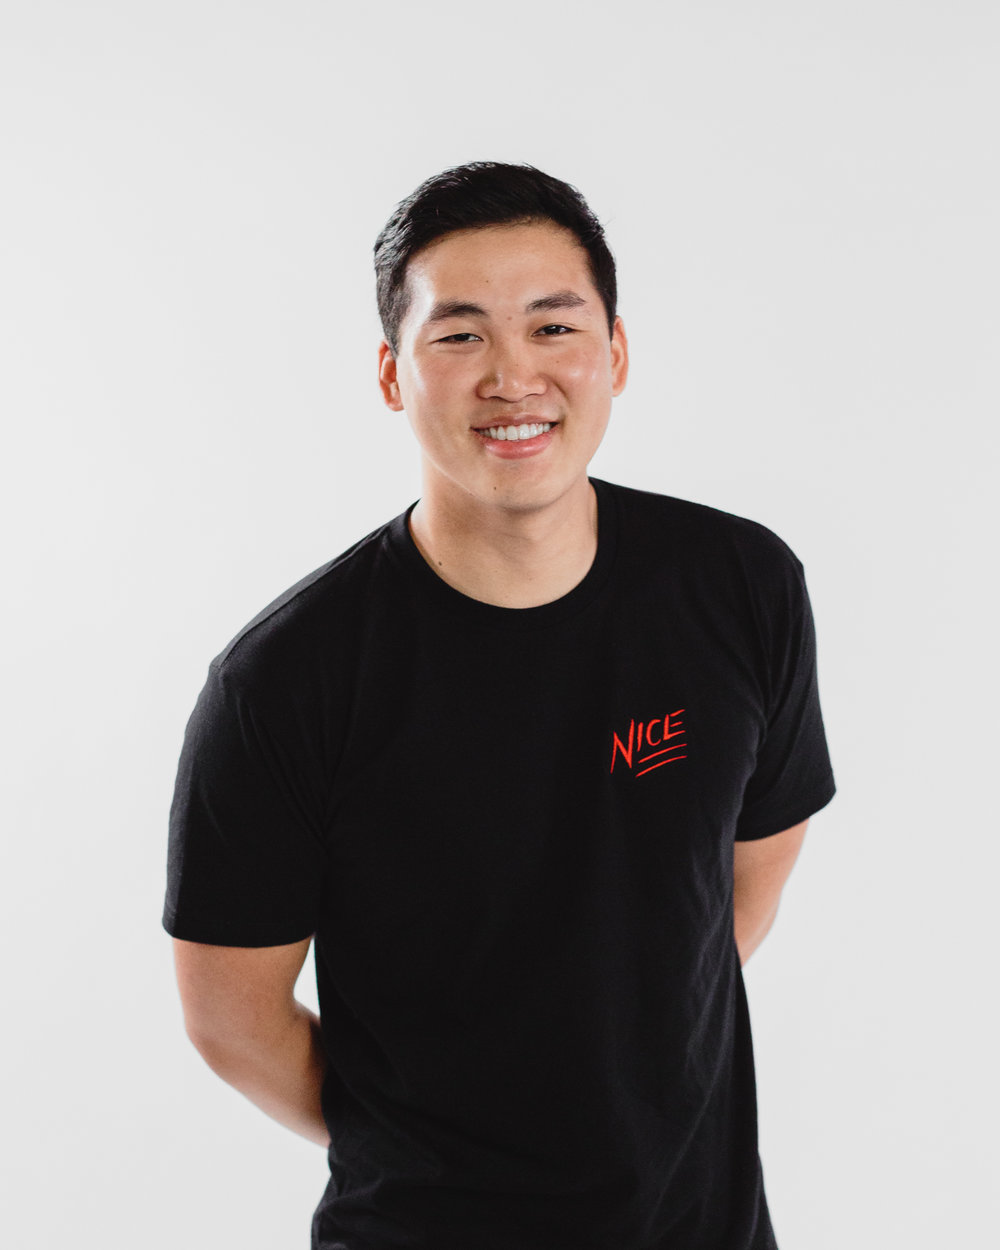 BENSON QUACH - is a filmmaker based in Los Angeles, CA specializing in Assistant Directing and Producing for independent films, commercials, and online content. Benson left his hometown of San Diego, CA in 2010 to attend the California State University of Northridge. He completed his studies in 2014 with a Bachelor of Arts in Film Production emphasizing on Editing and Production Management.Benson's wide array of experience spans across feature films,television series, short films, commercials, and music videos. Currently, Benson is the in-house Assistant Director and Producer for the popular YouTube-based production company Wong Fu Productions.Click HERE to view my IMDb page(*headshot provided by Joyce Chen)